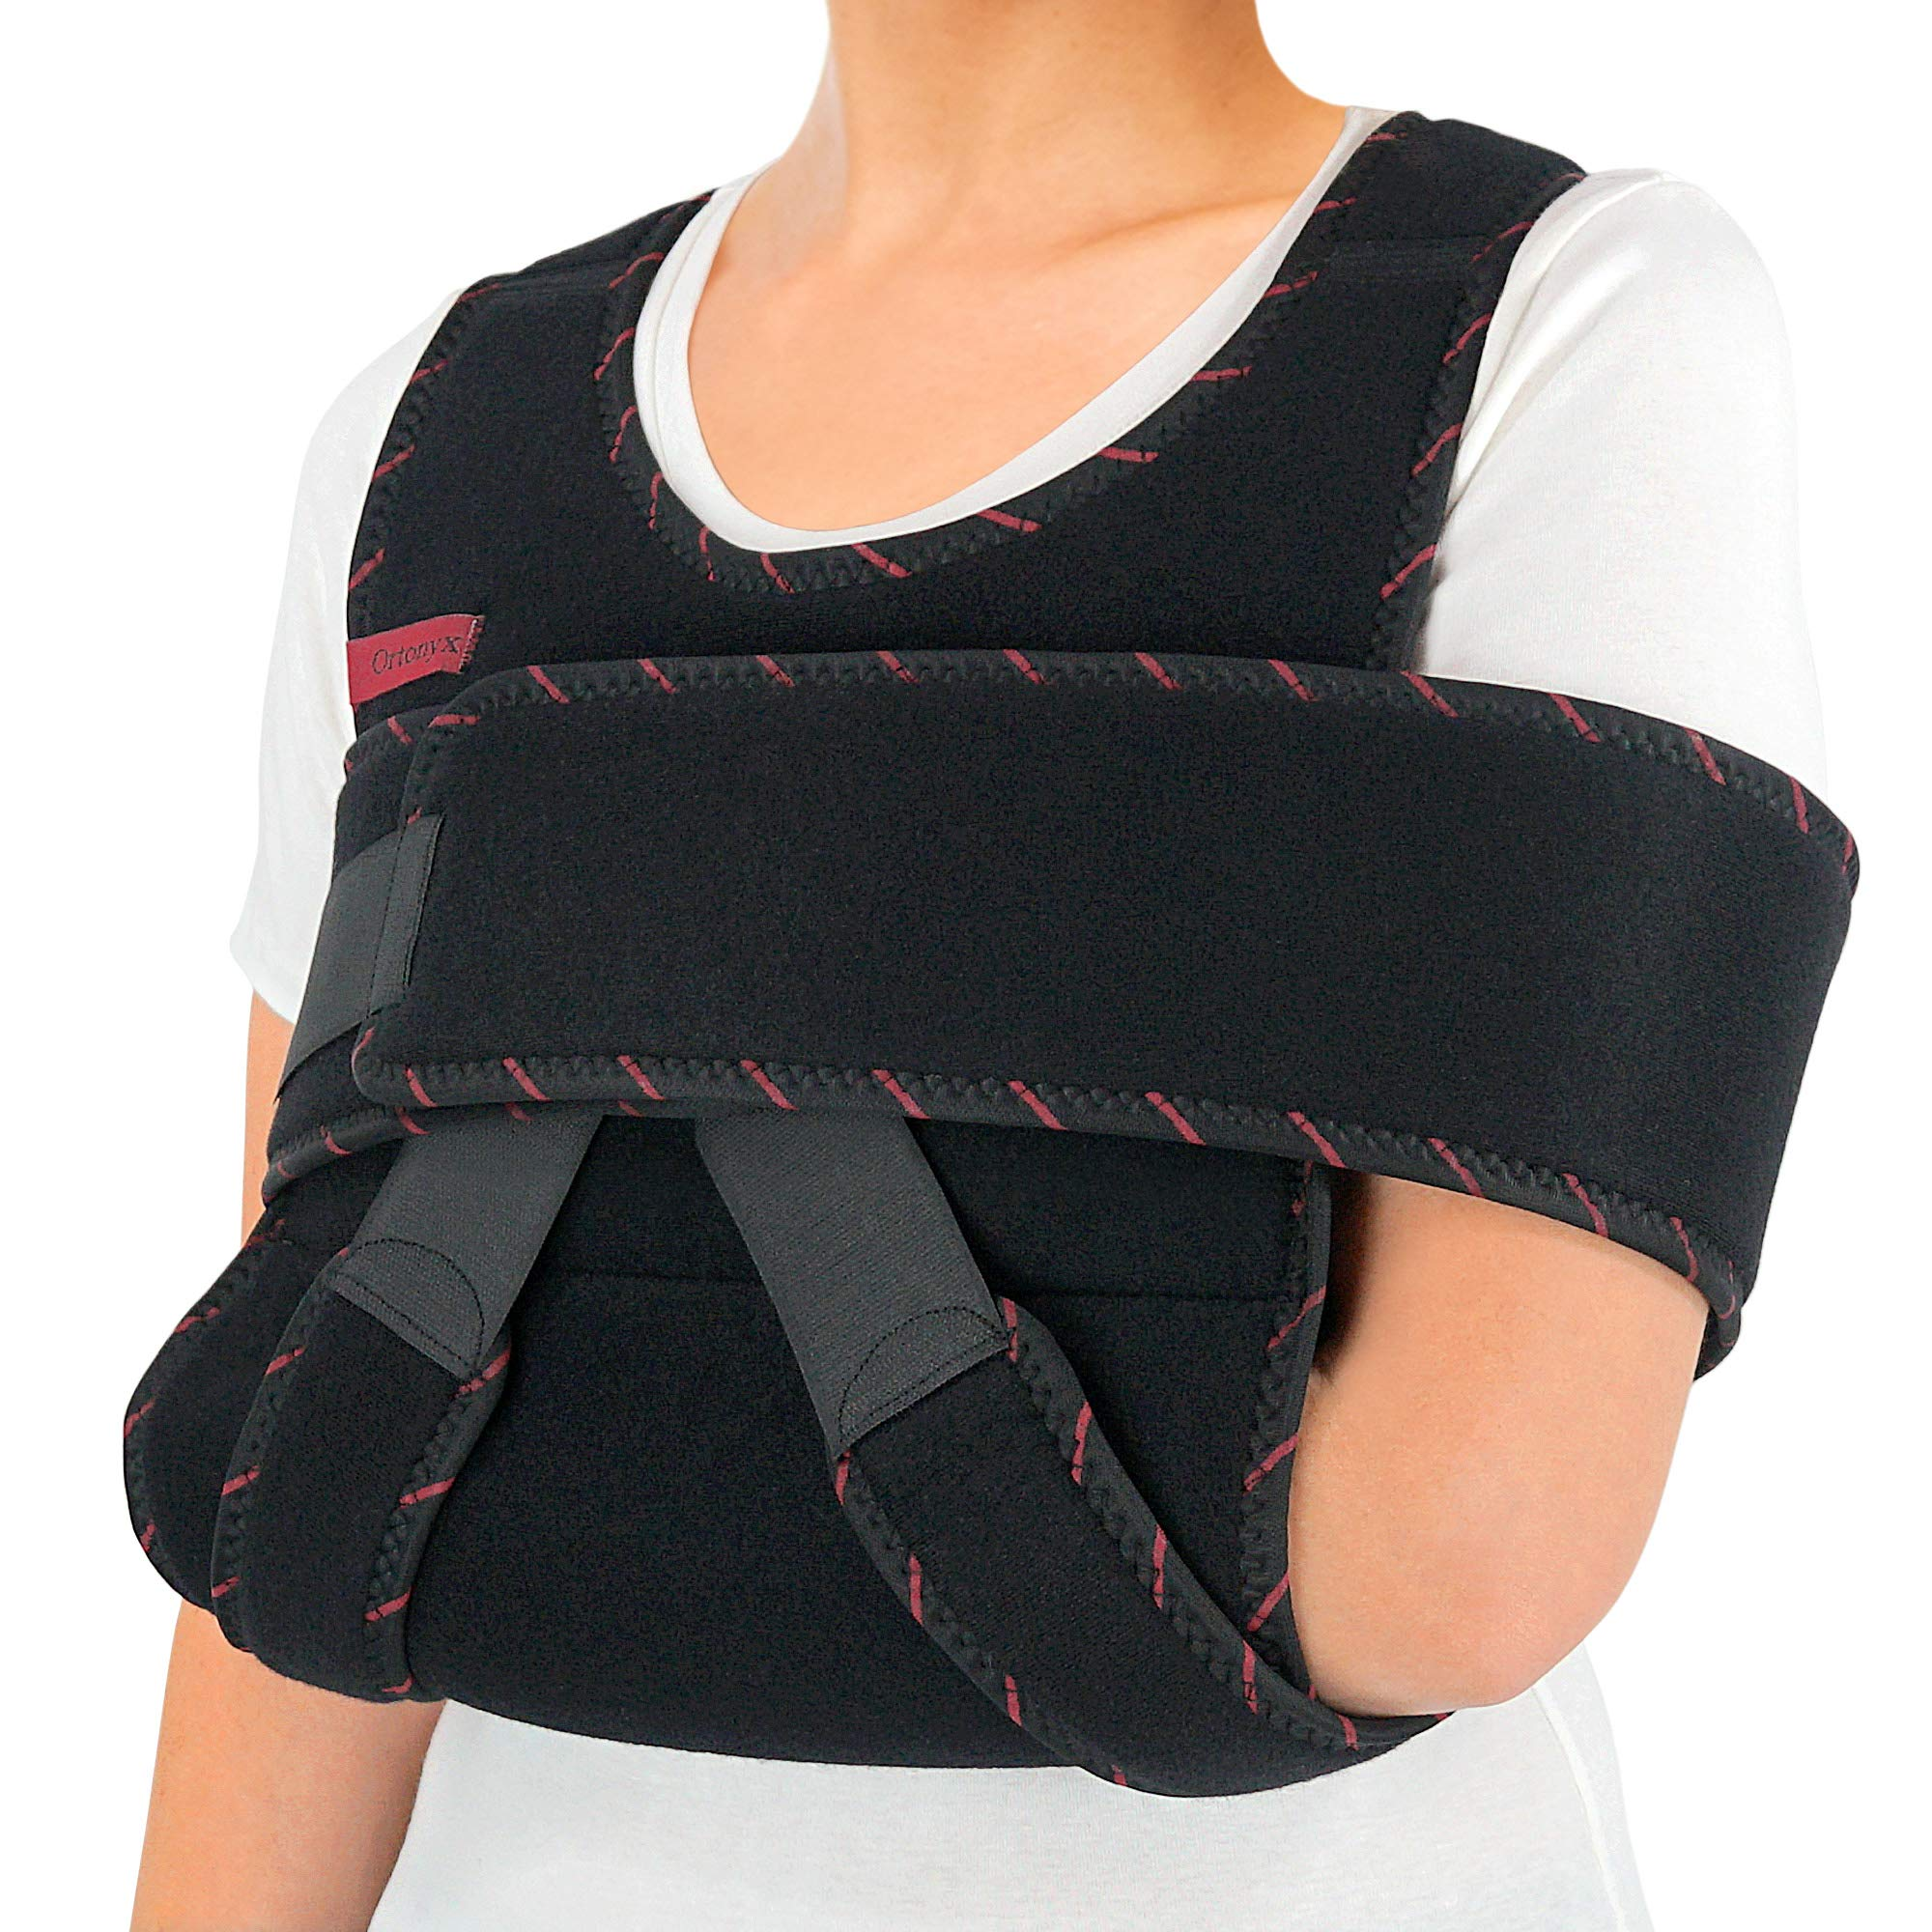 ORTONYX Arm Sling Shoulder Immobilizer Brace - Adjustable Rotator Cuff and Elbow Support - for Men and Women - Fits Left and Right Hand - Extra Immobilizer Band Provides Extra Protection/Large-XXL by ORTONYX